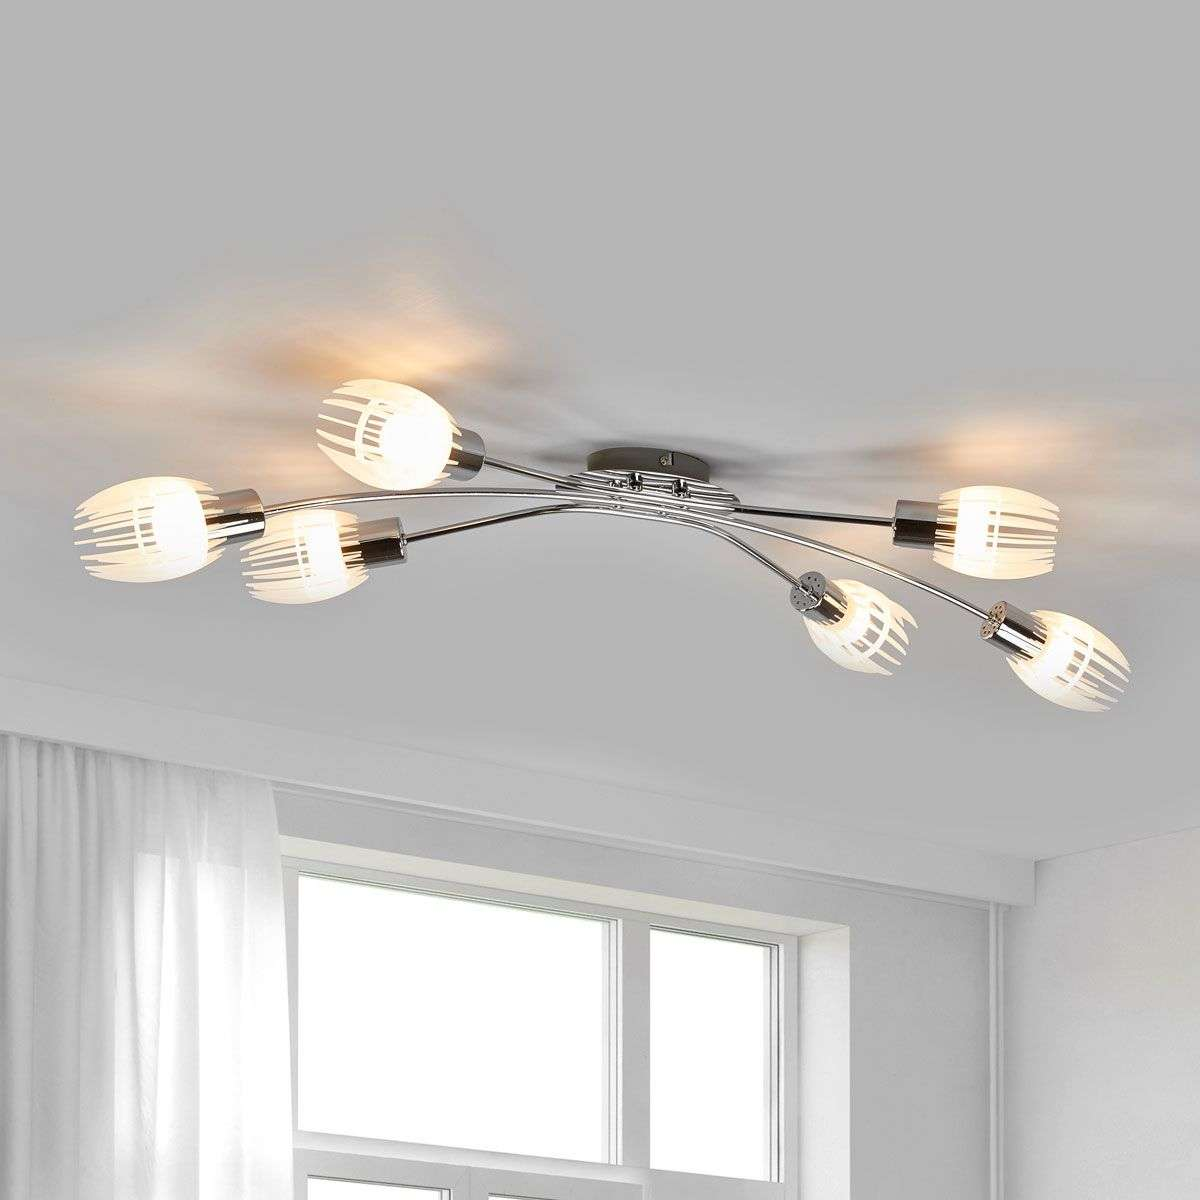 Decorative led ceiling lamp alexis lights decorative led ceiling lamp alexis 9994081 32 aloadofball Choice Image